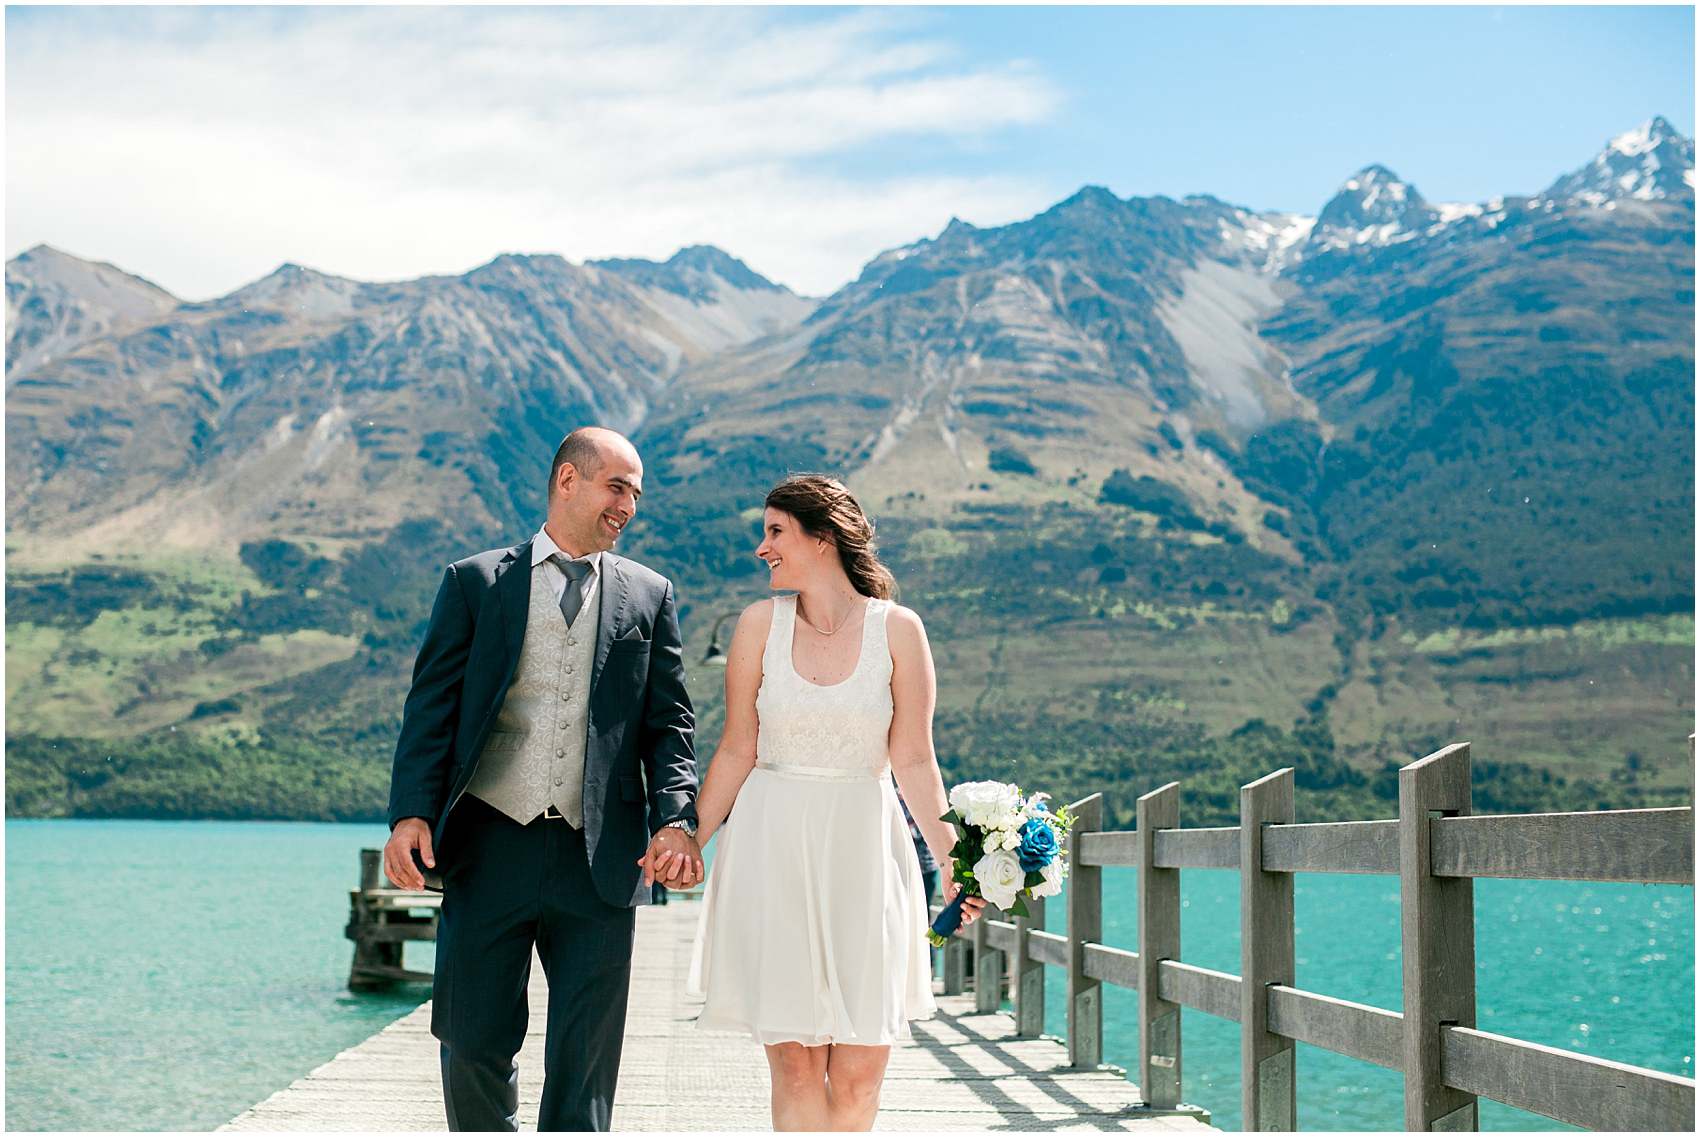 Queenstown New Zealand Wedding Photographer Bruna Fabricio Smetona Photo-0036.jpg